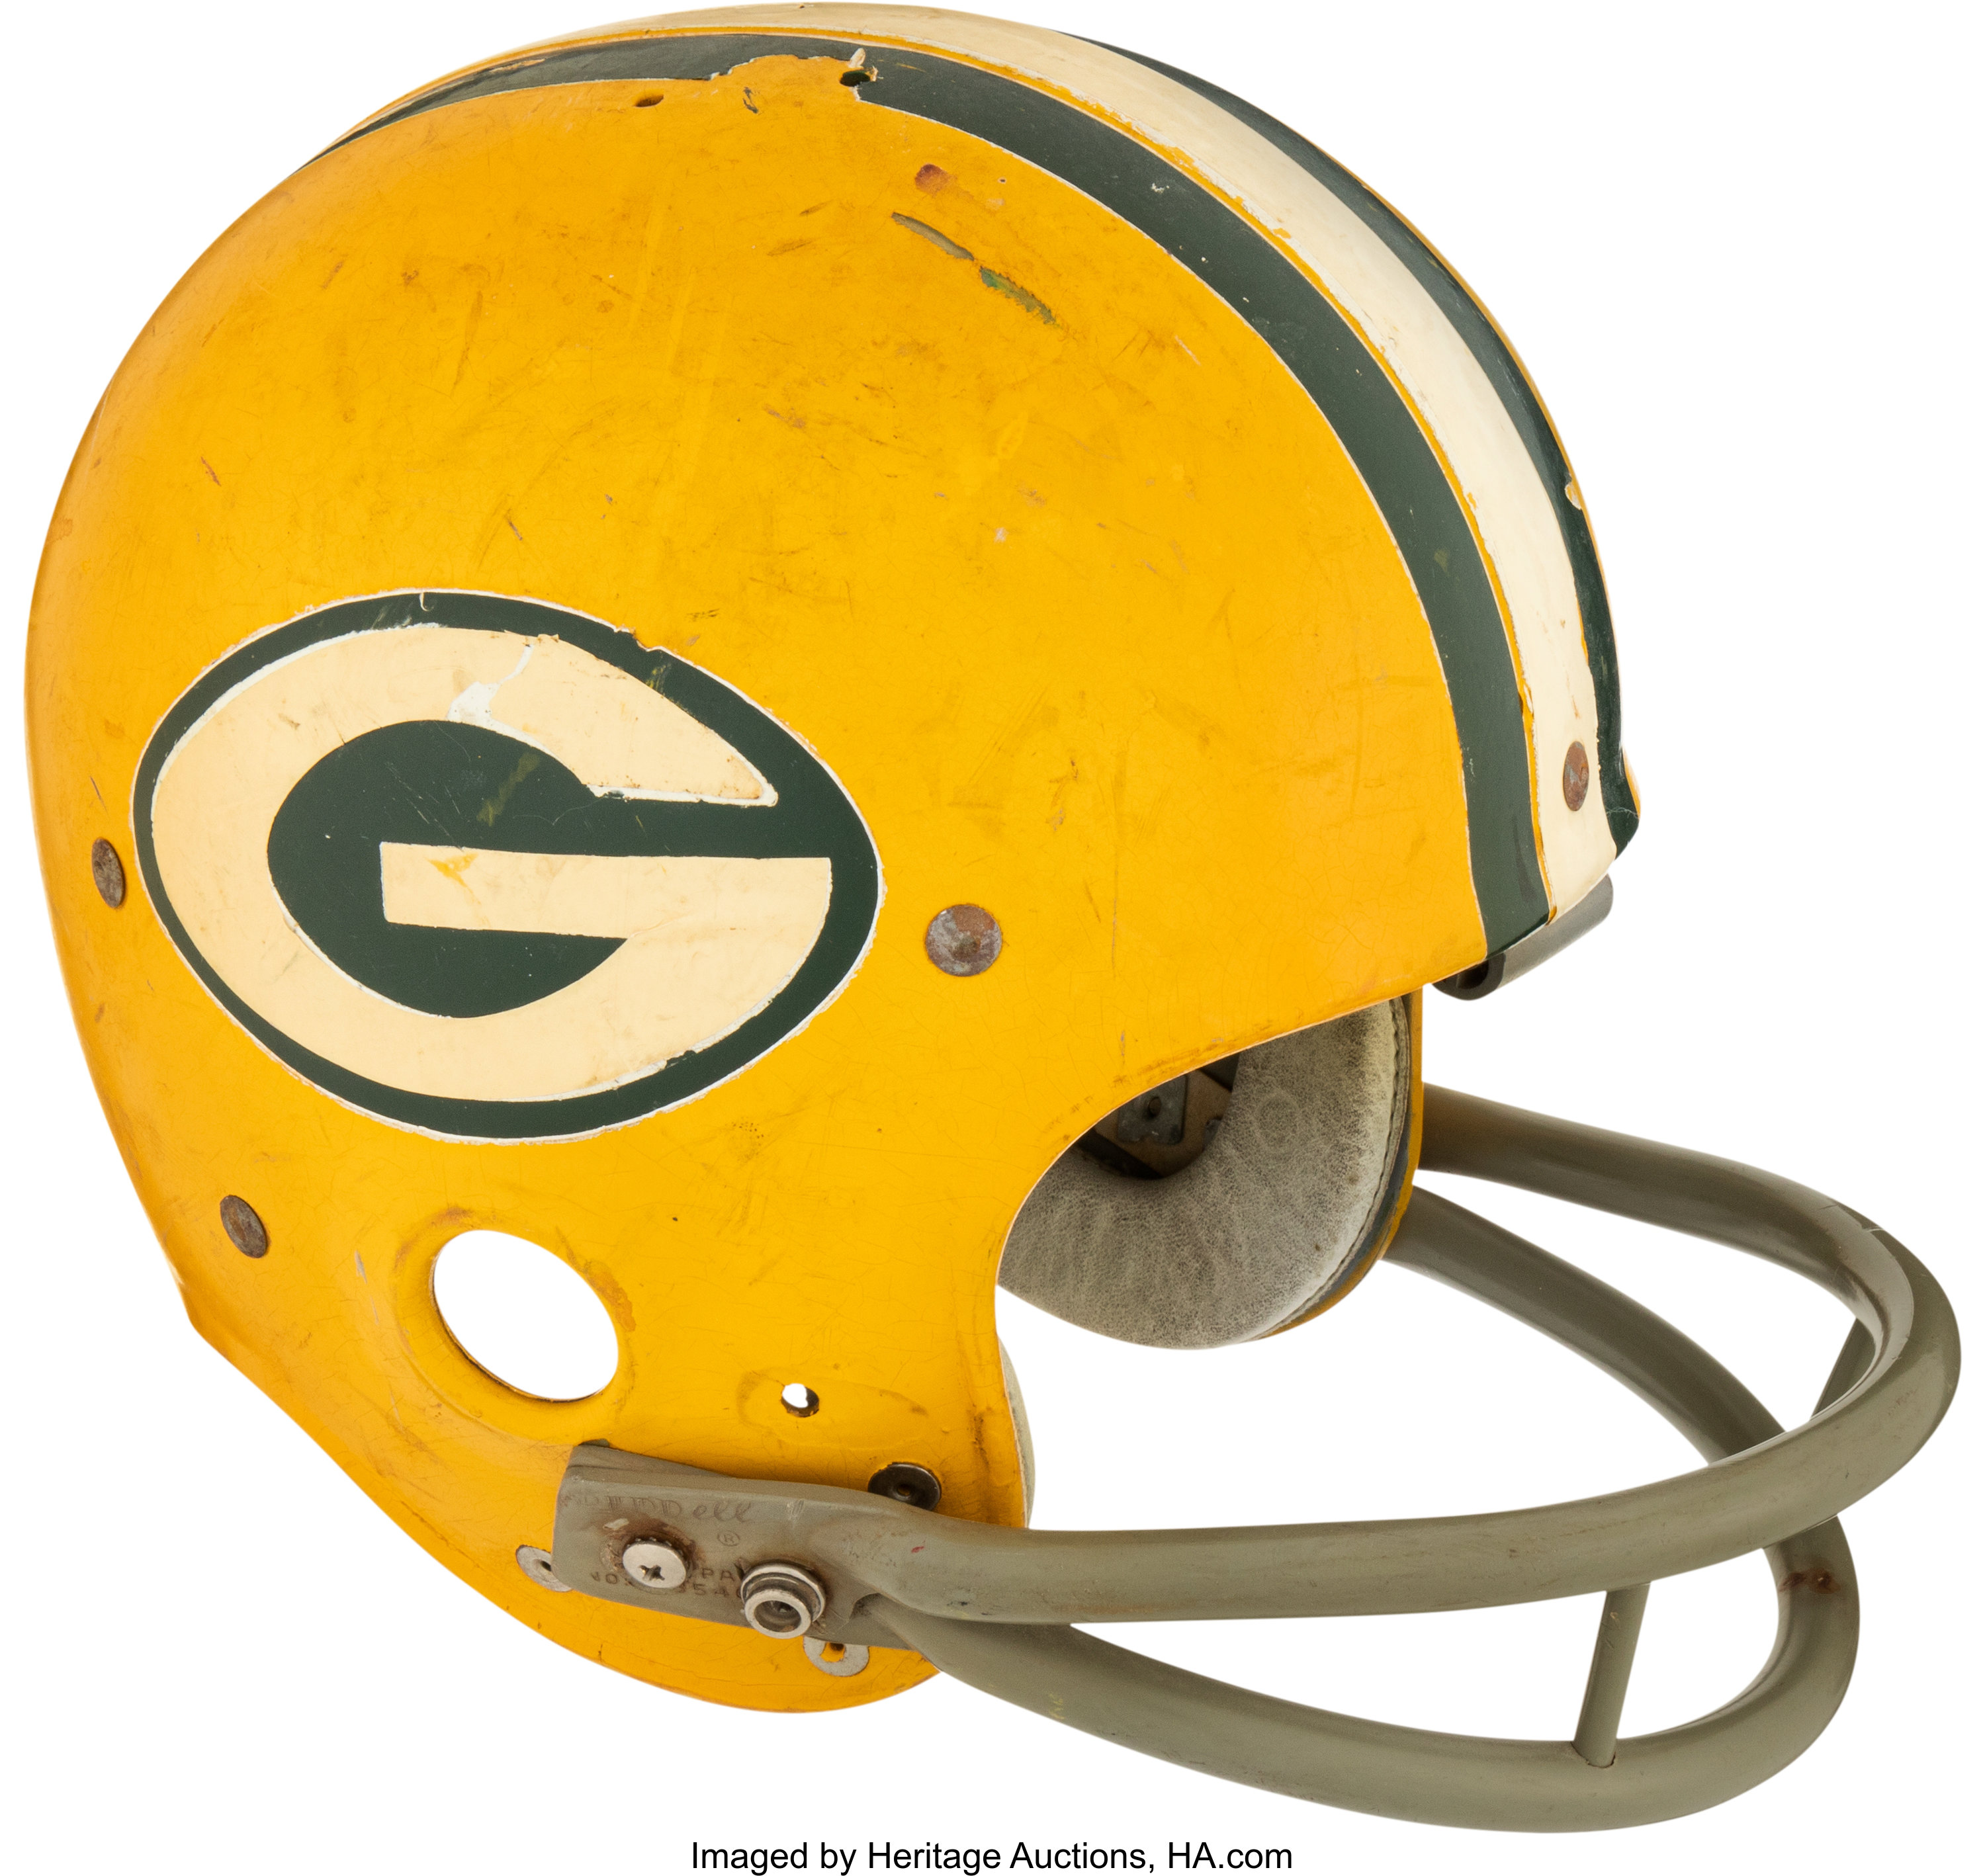 Mid To Late 1960 S Green Bay Packers Game Worn Helmet Football Lot 53111 Heritage Auctions